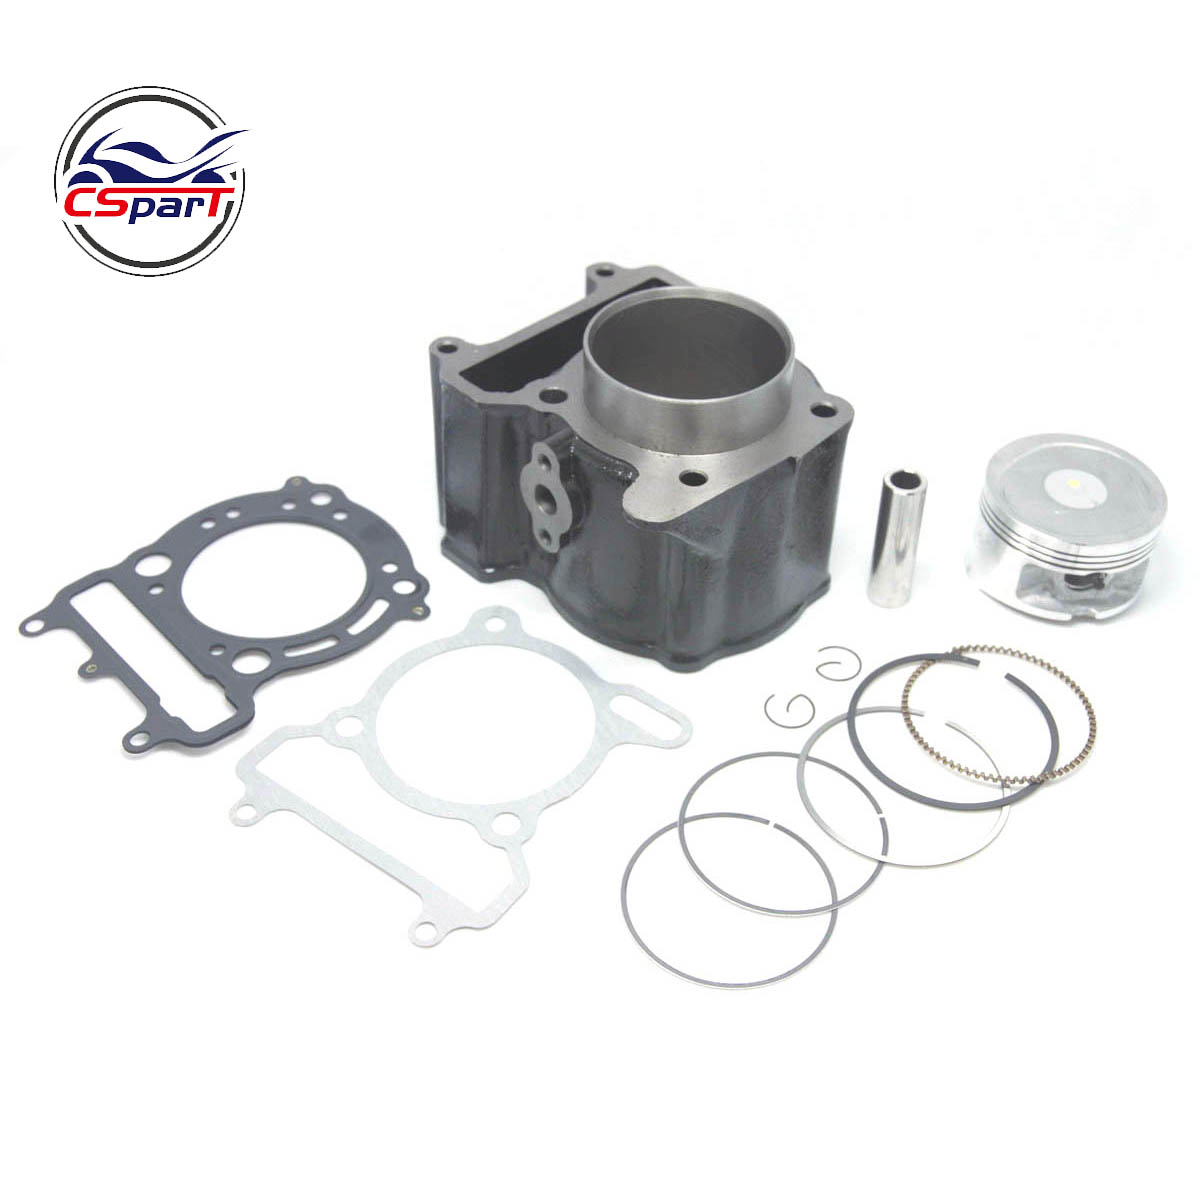 70mm cylindre Piston anneau Kit YP260 257 YP250 VOG 260CC Linhai QianJiang Keeway ATV UTV BUYANG Scooter